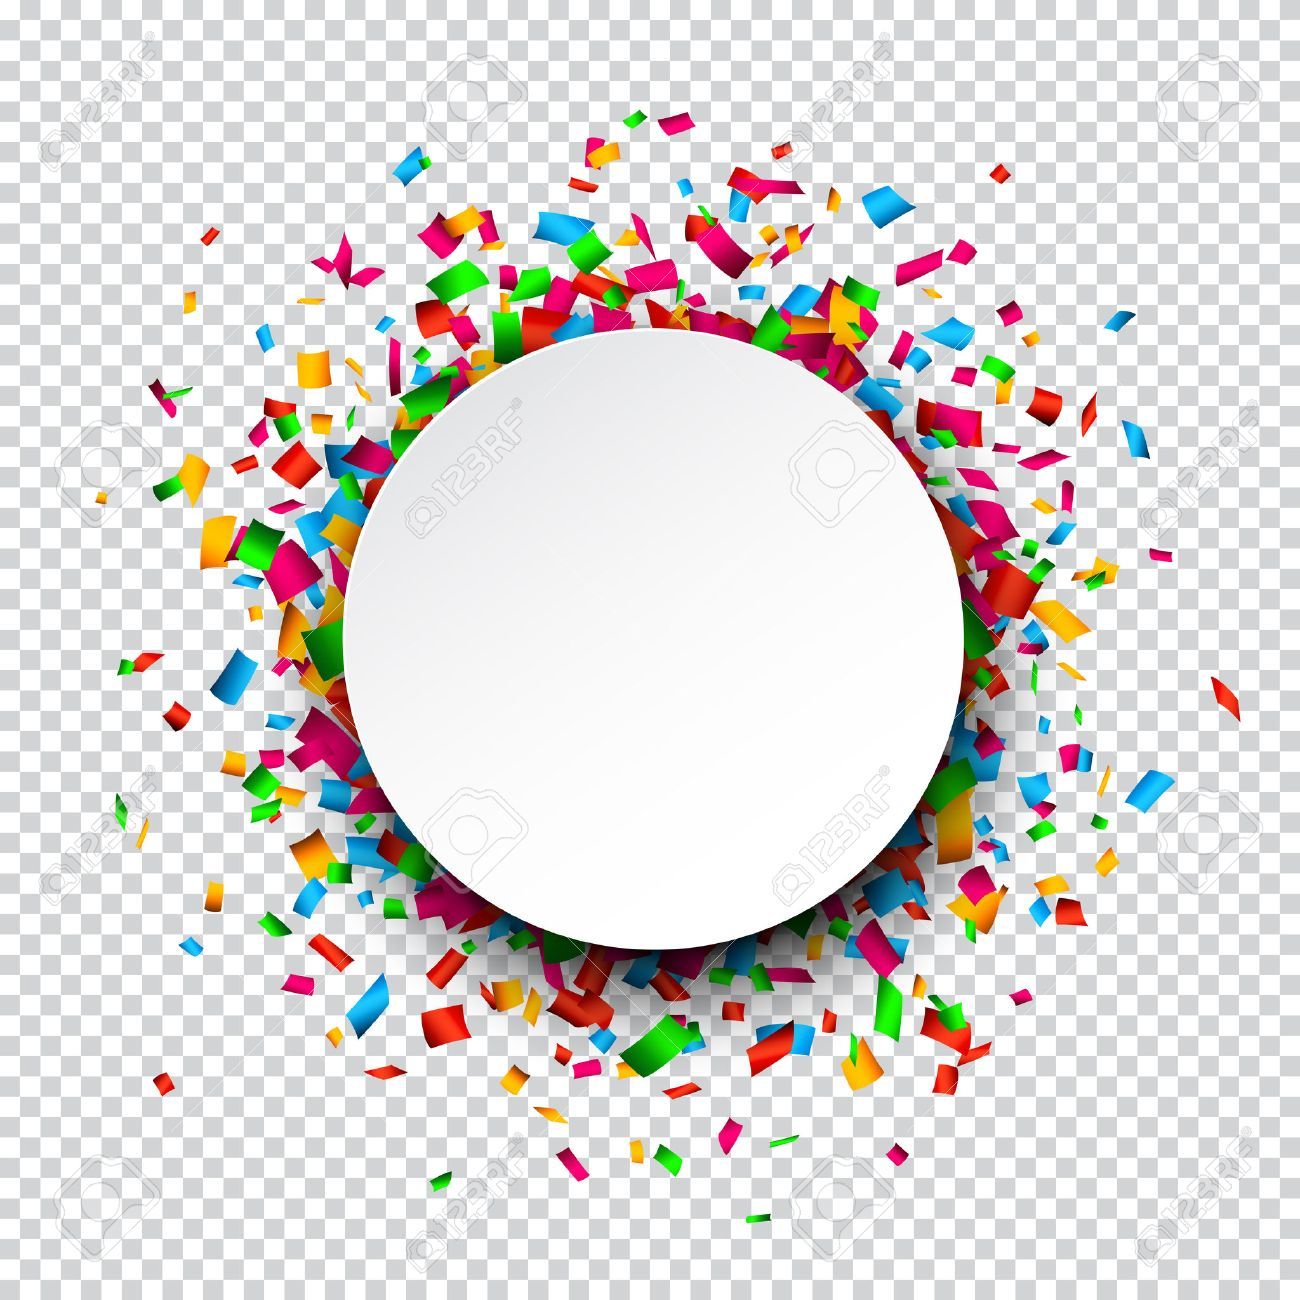 Colorful celebration background. Paper round speech bubble with confetti. Stock Vector - 43211632